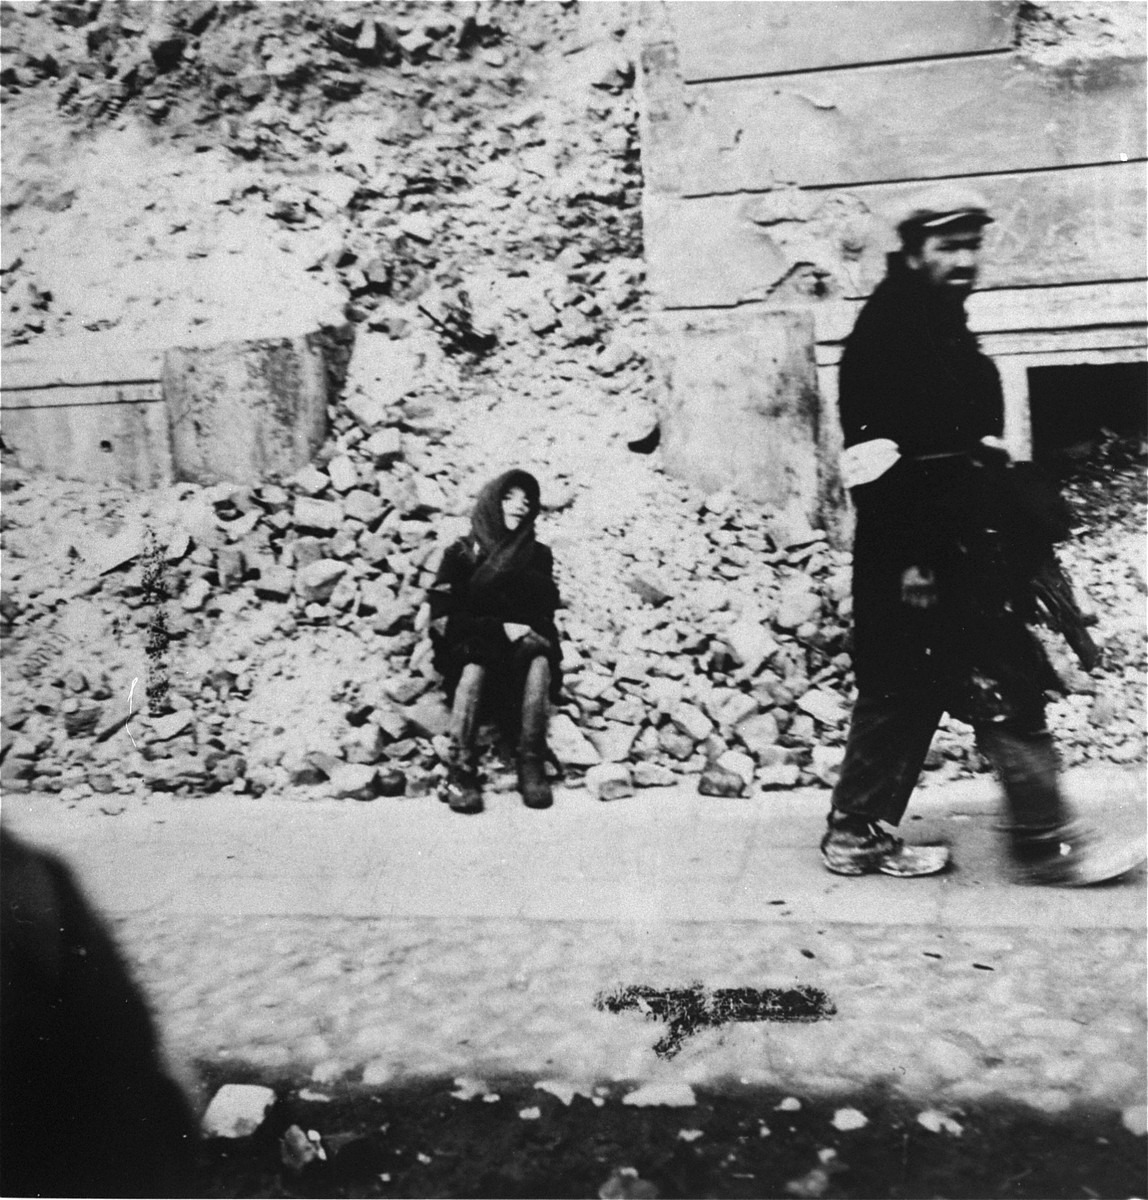 A destitute child sits on the ruins of a building in the Warsaw ghetto while another man walks by.